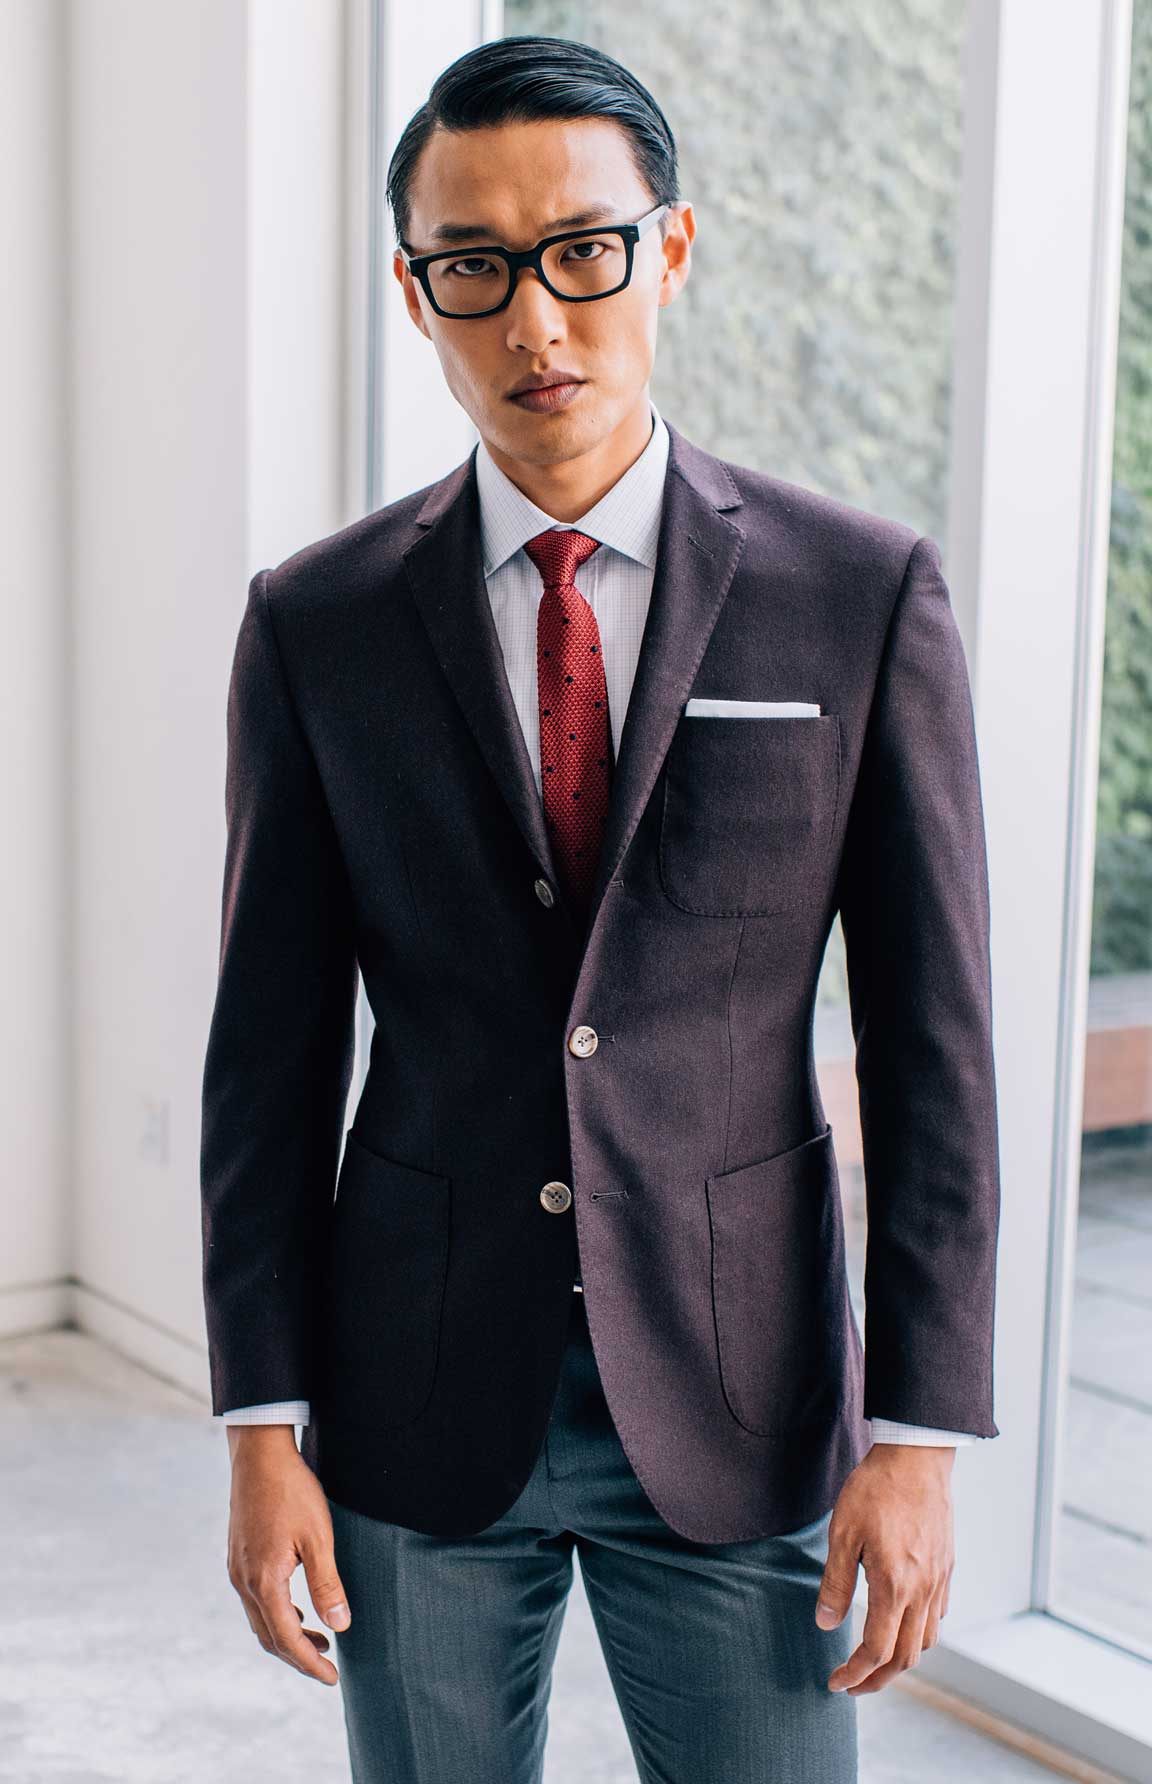 Patch pockets on your made-to-measure suit is the move.